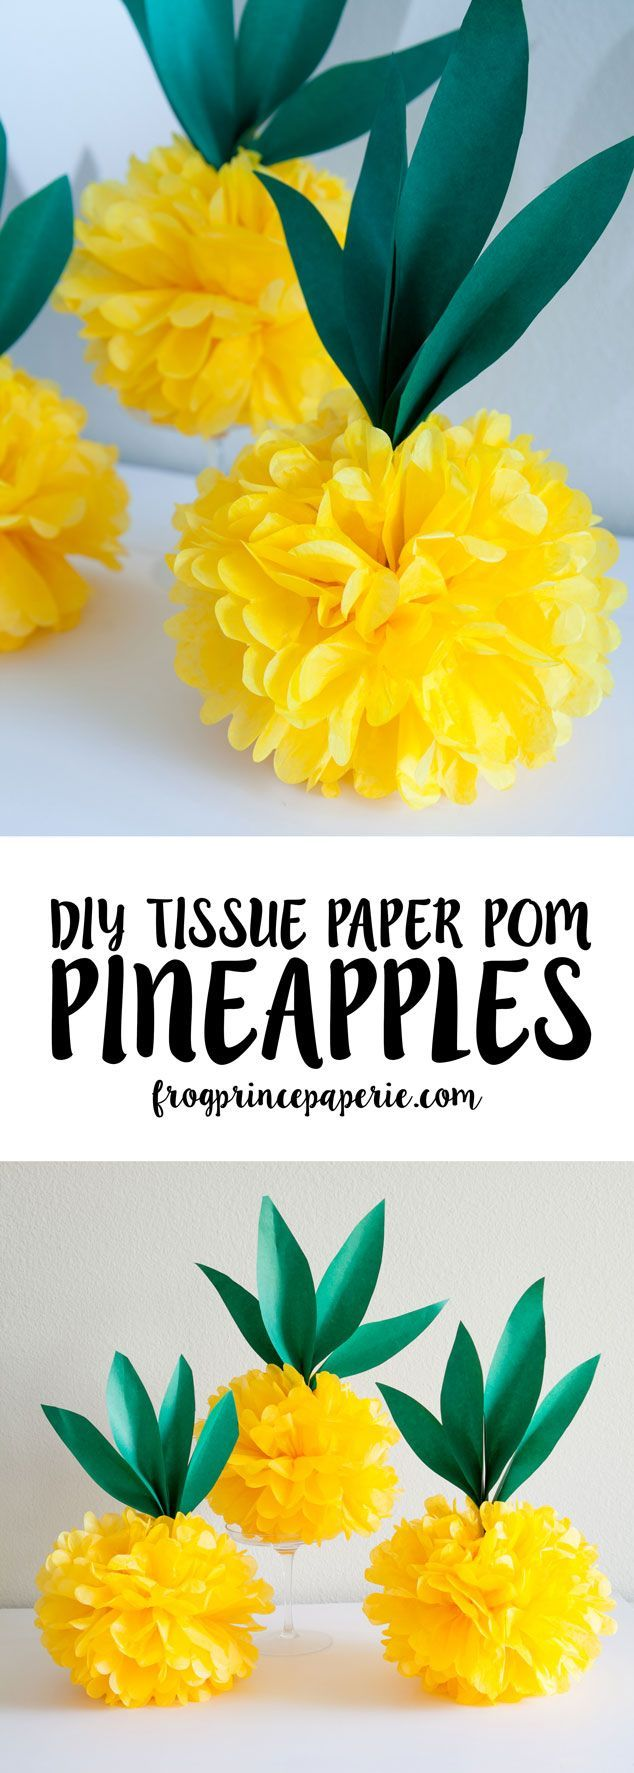 Make your own luau, pineapple party or flamingo party decorations with easy tissue pouf pineapple and flamingo tutorials.